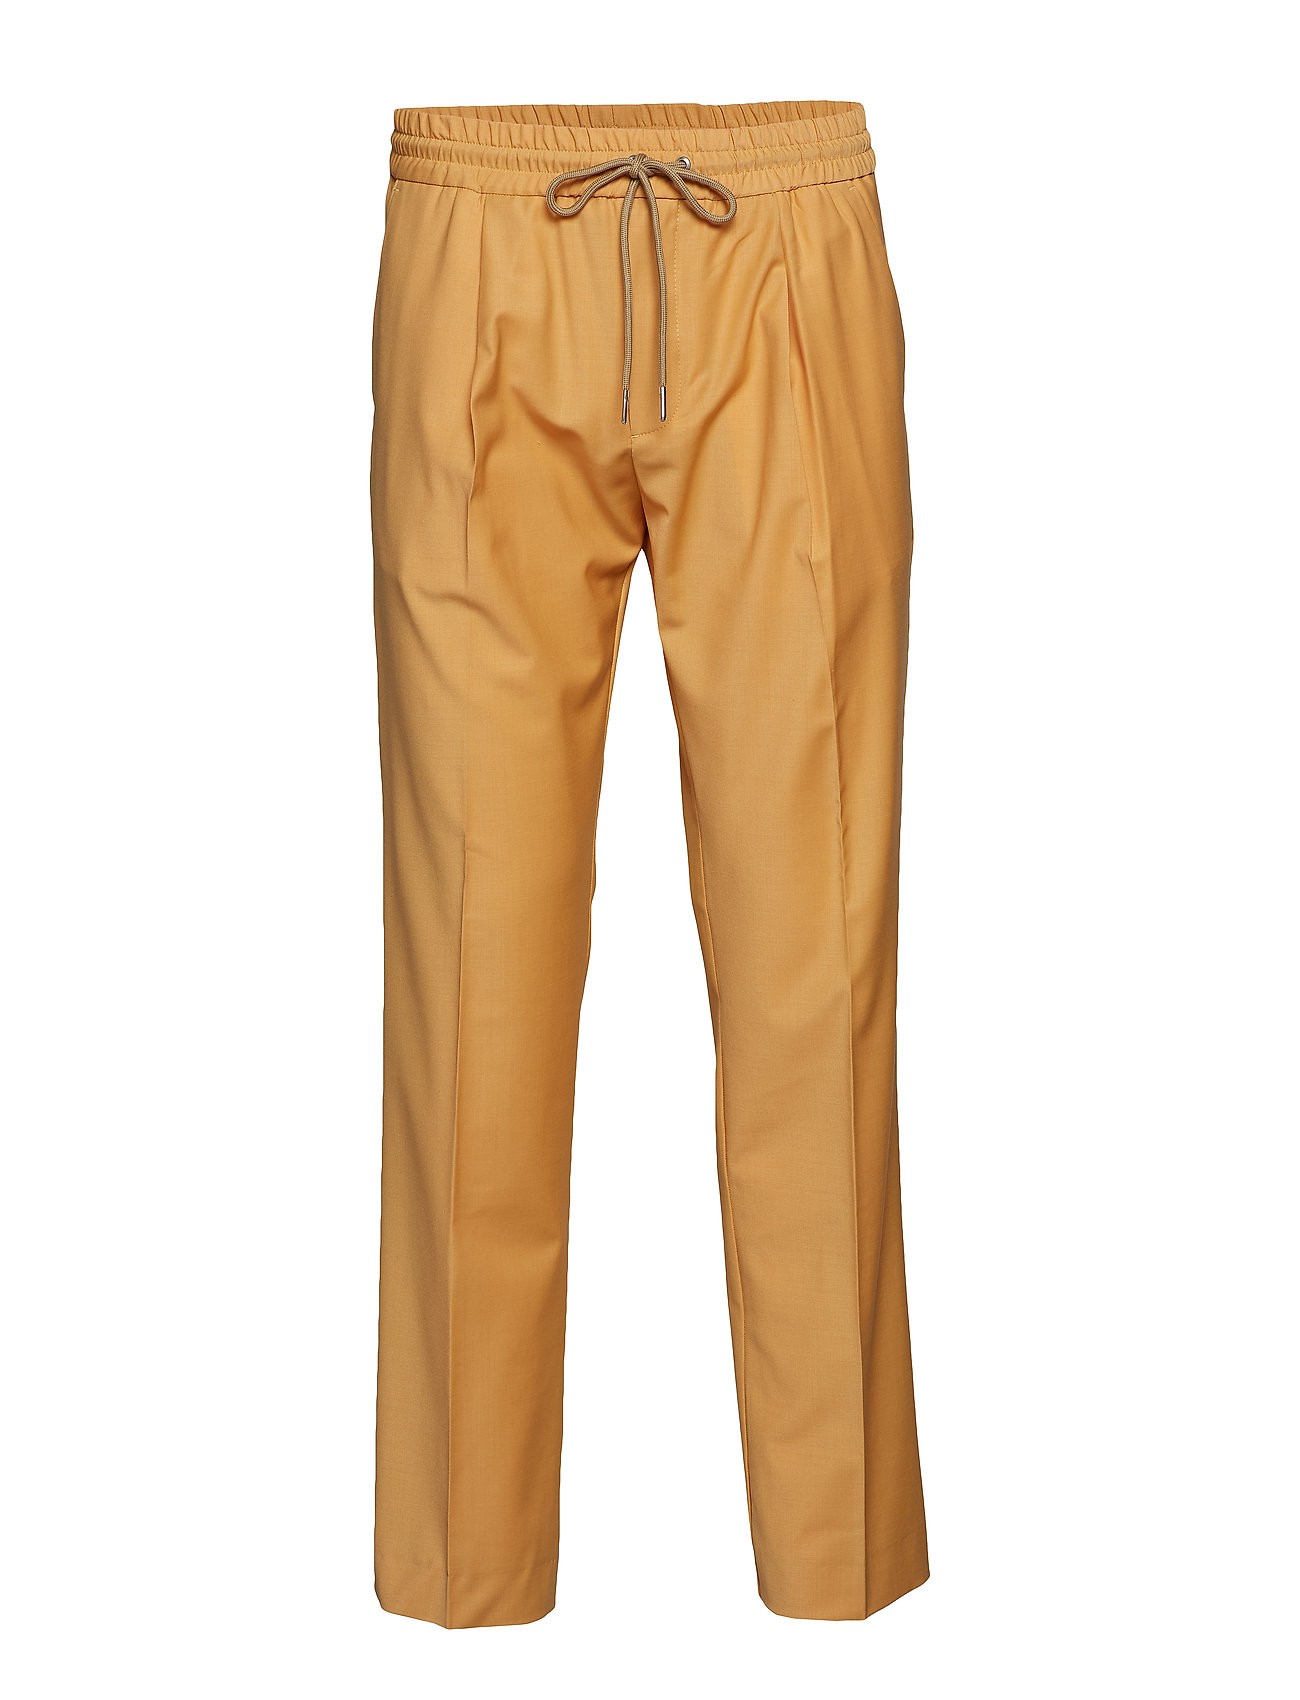 Martin Asbjørn NEAL DRAWSTRING - BUTTERSCOTCH - BUTTERSCOTCH